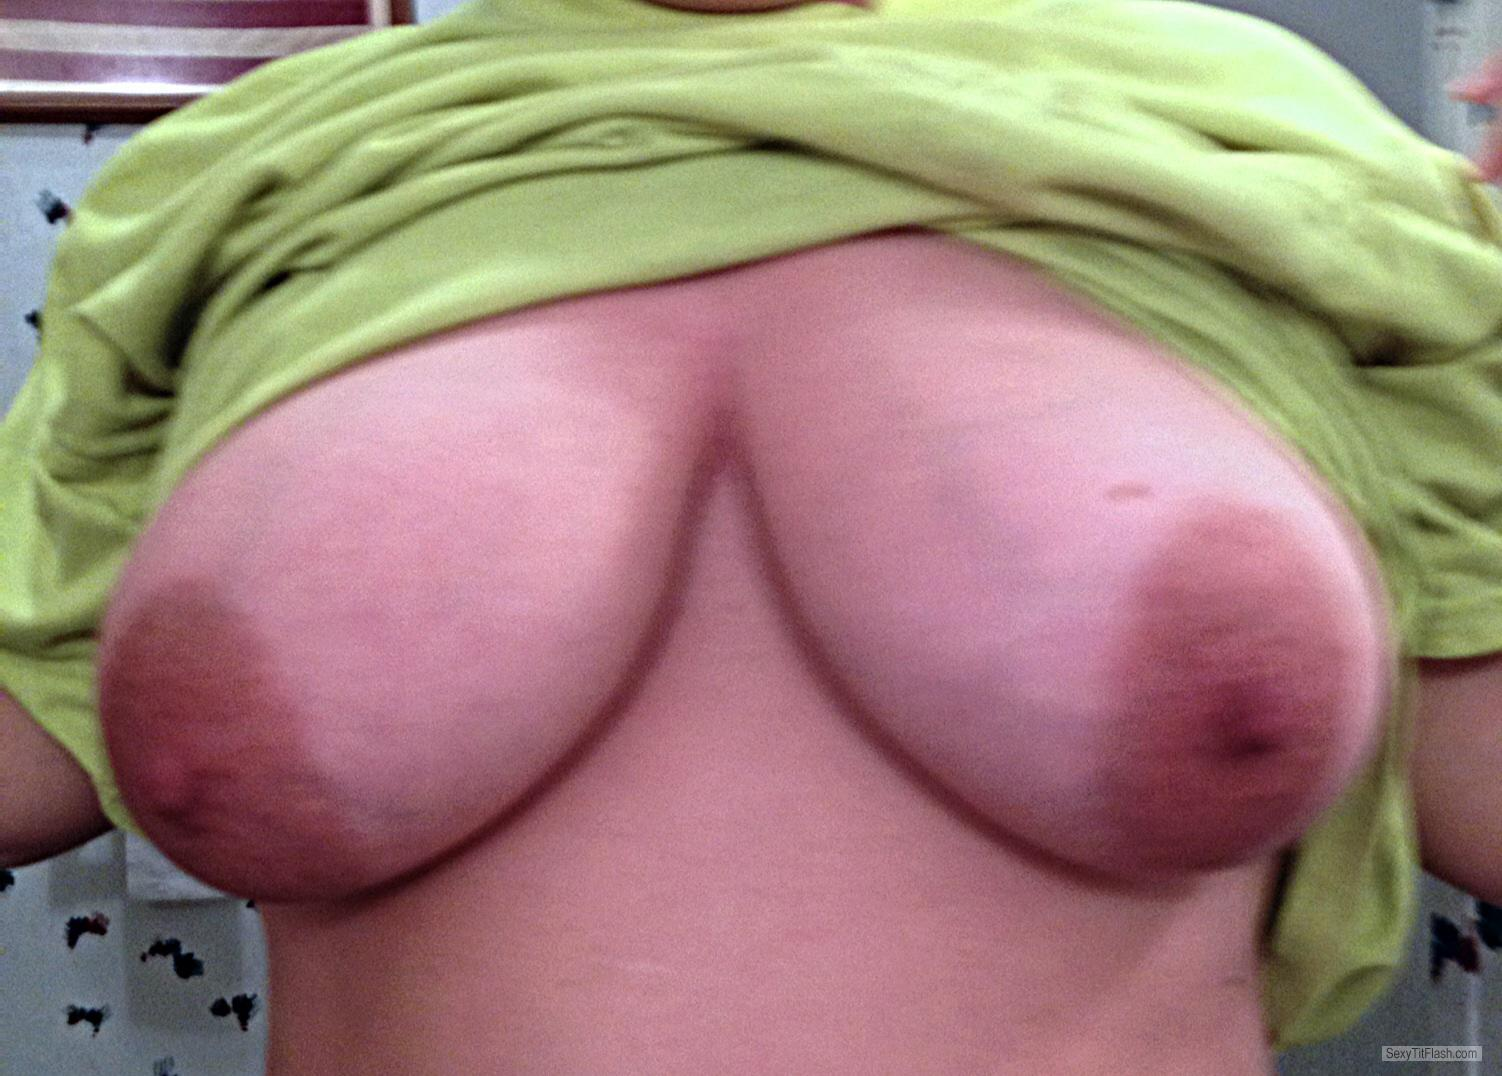 Tit Flash: Wife's Big Tits - Occ3 from United States